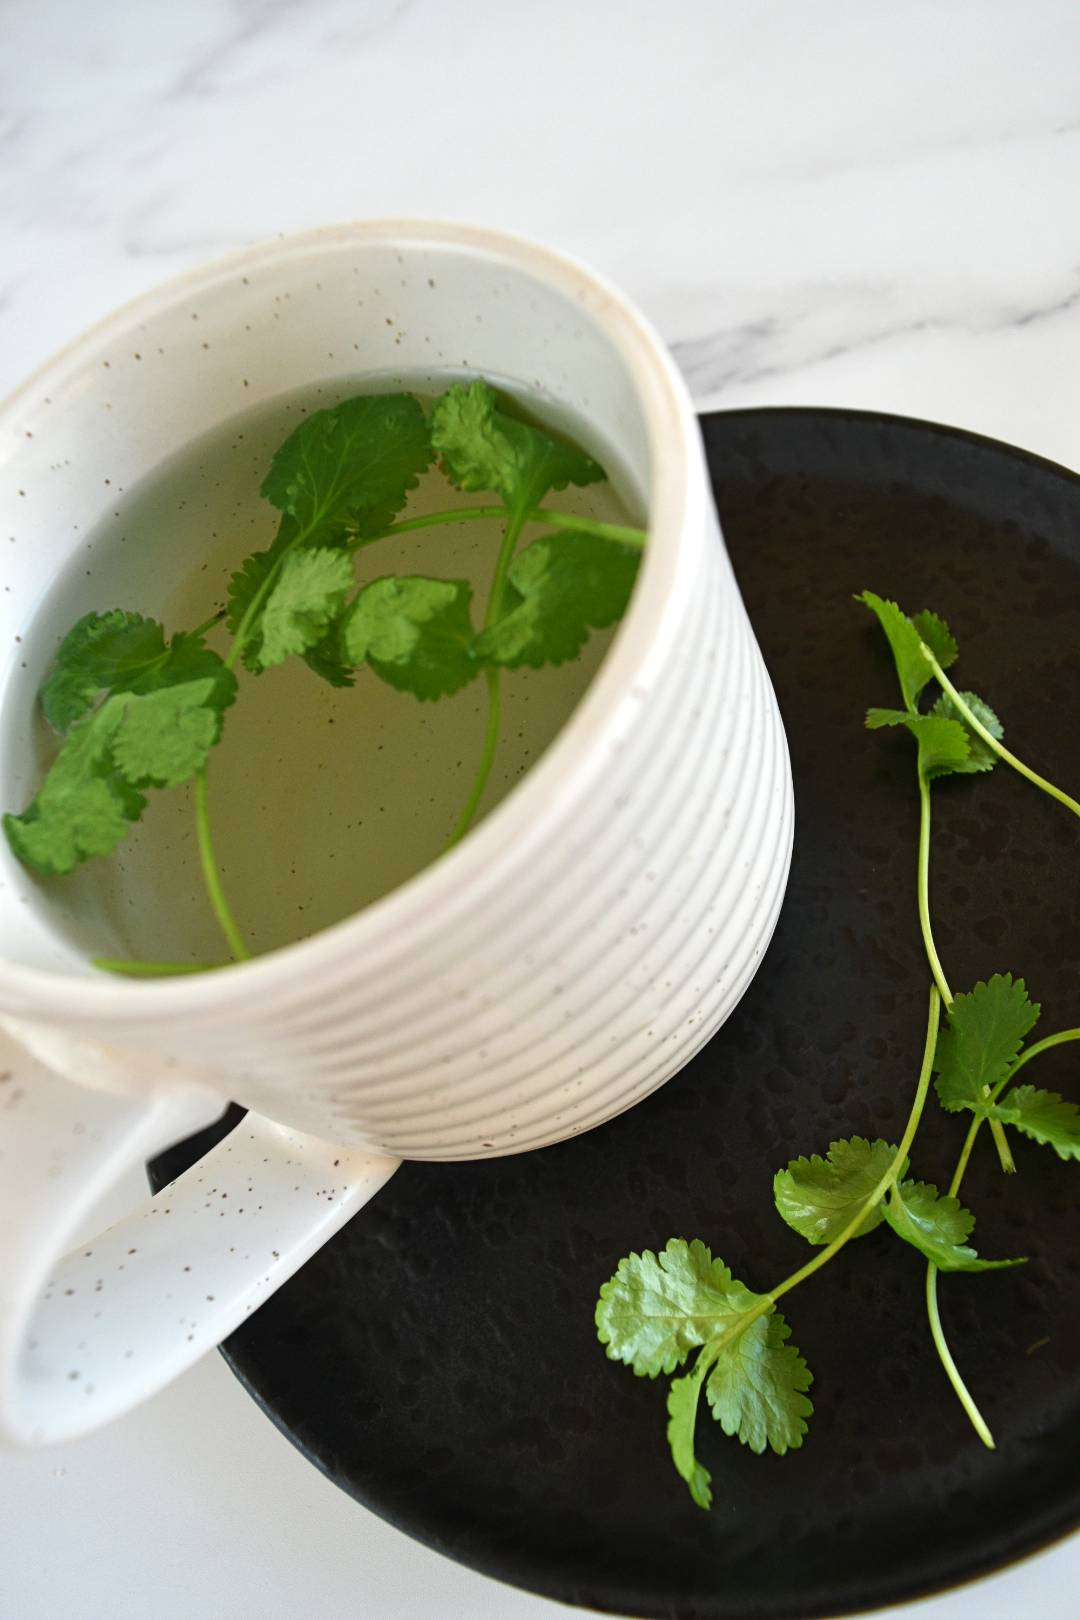 Cilantro tea in a cup with fresh cilantro on the side.